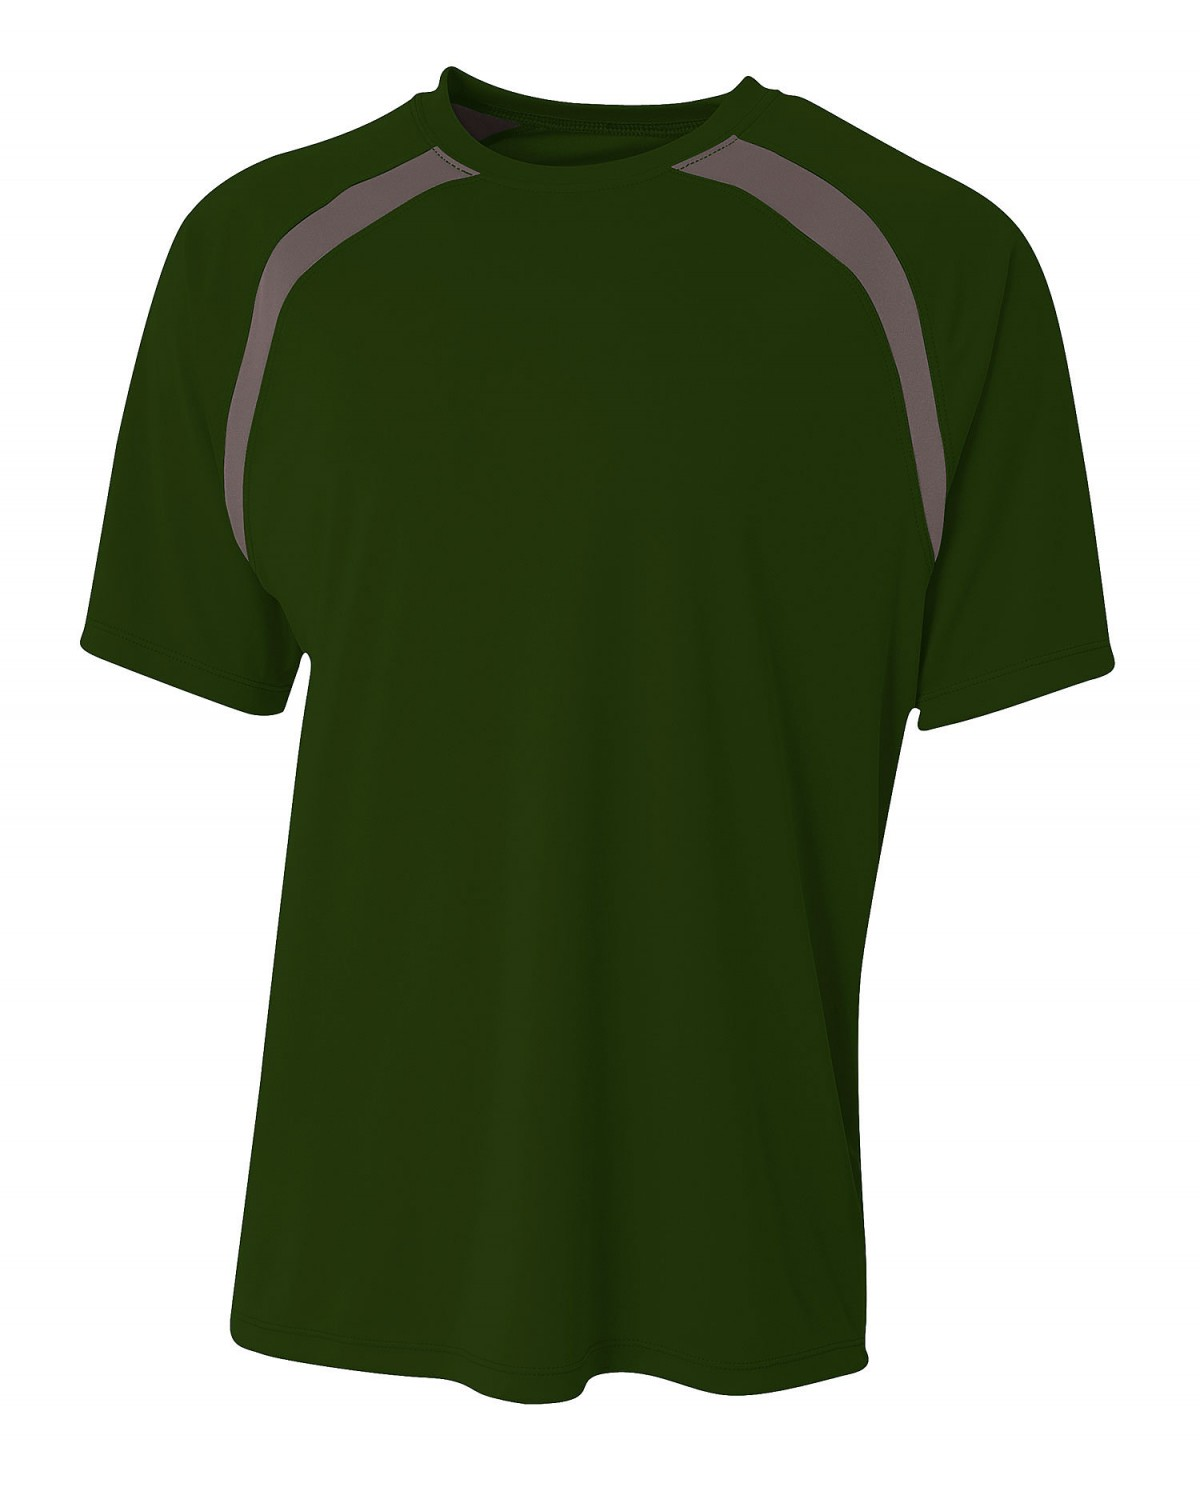 A939 Anvil CAMOUFLAGE GREEN